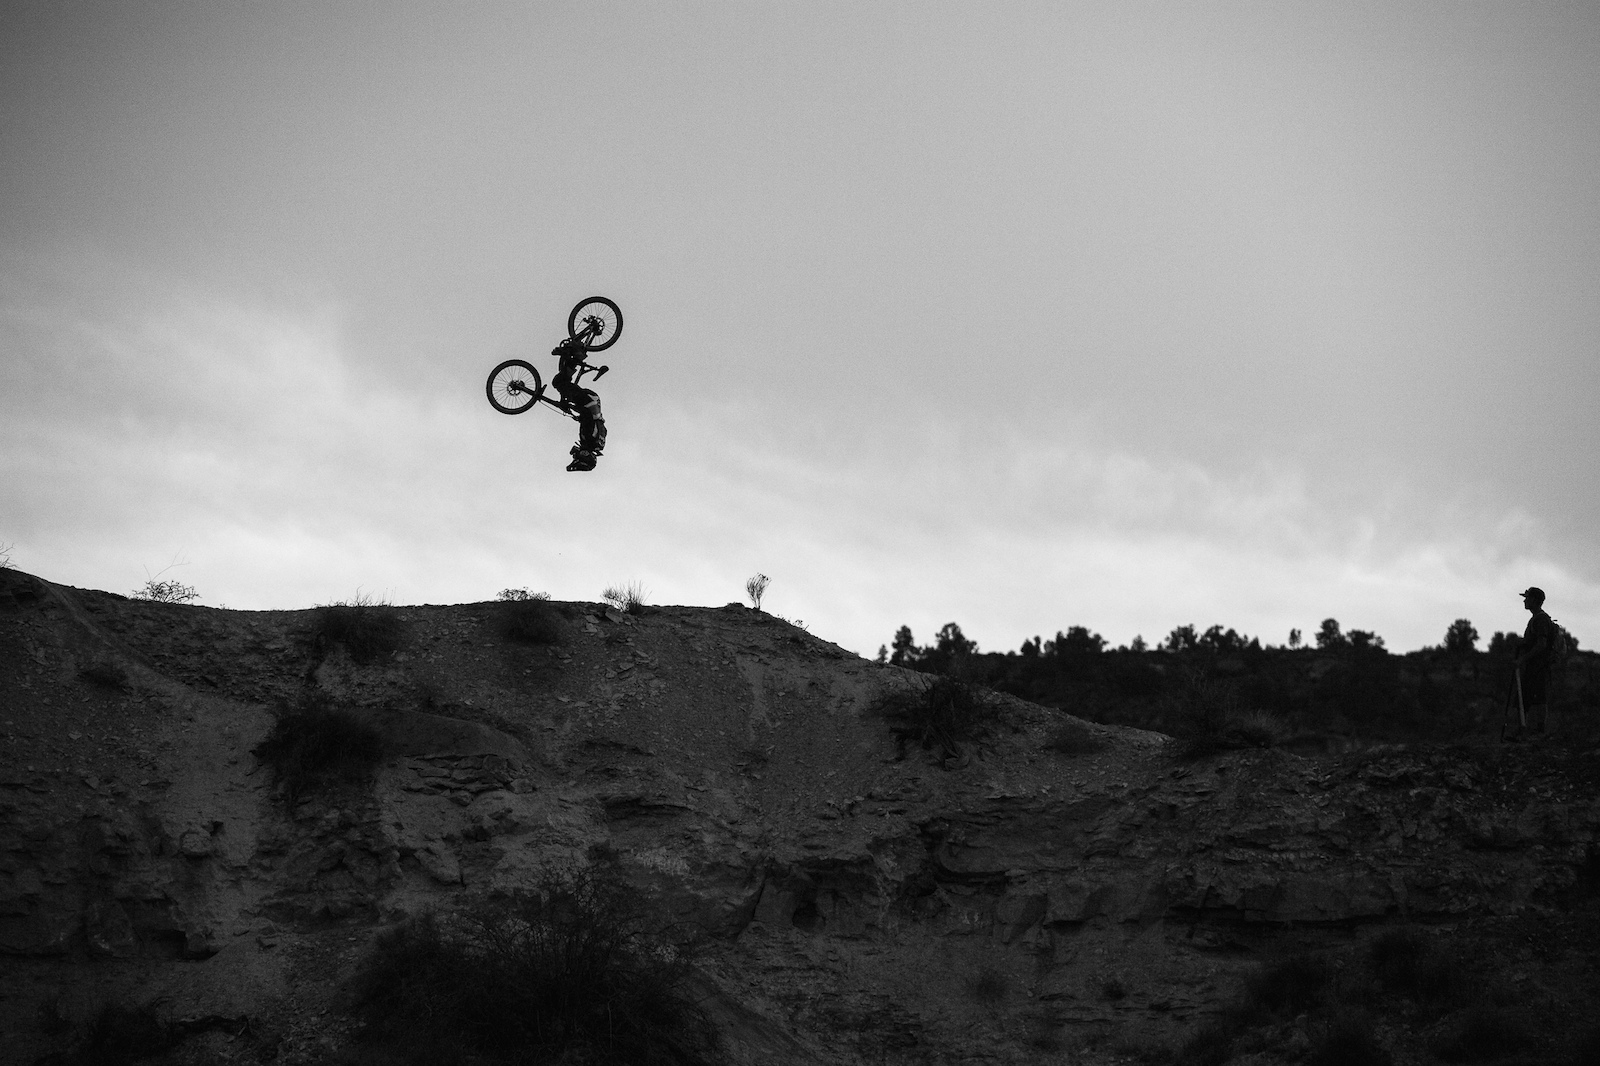 Tyler McCaul flipping off the ridge.